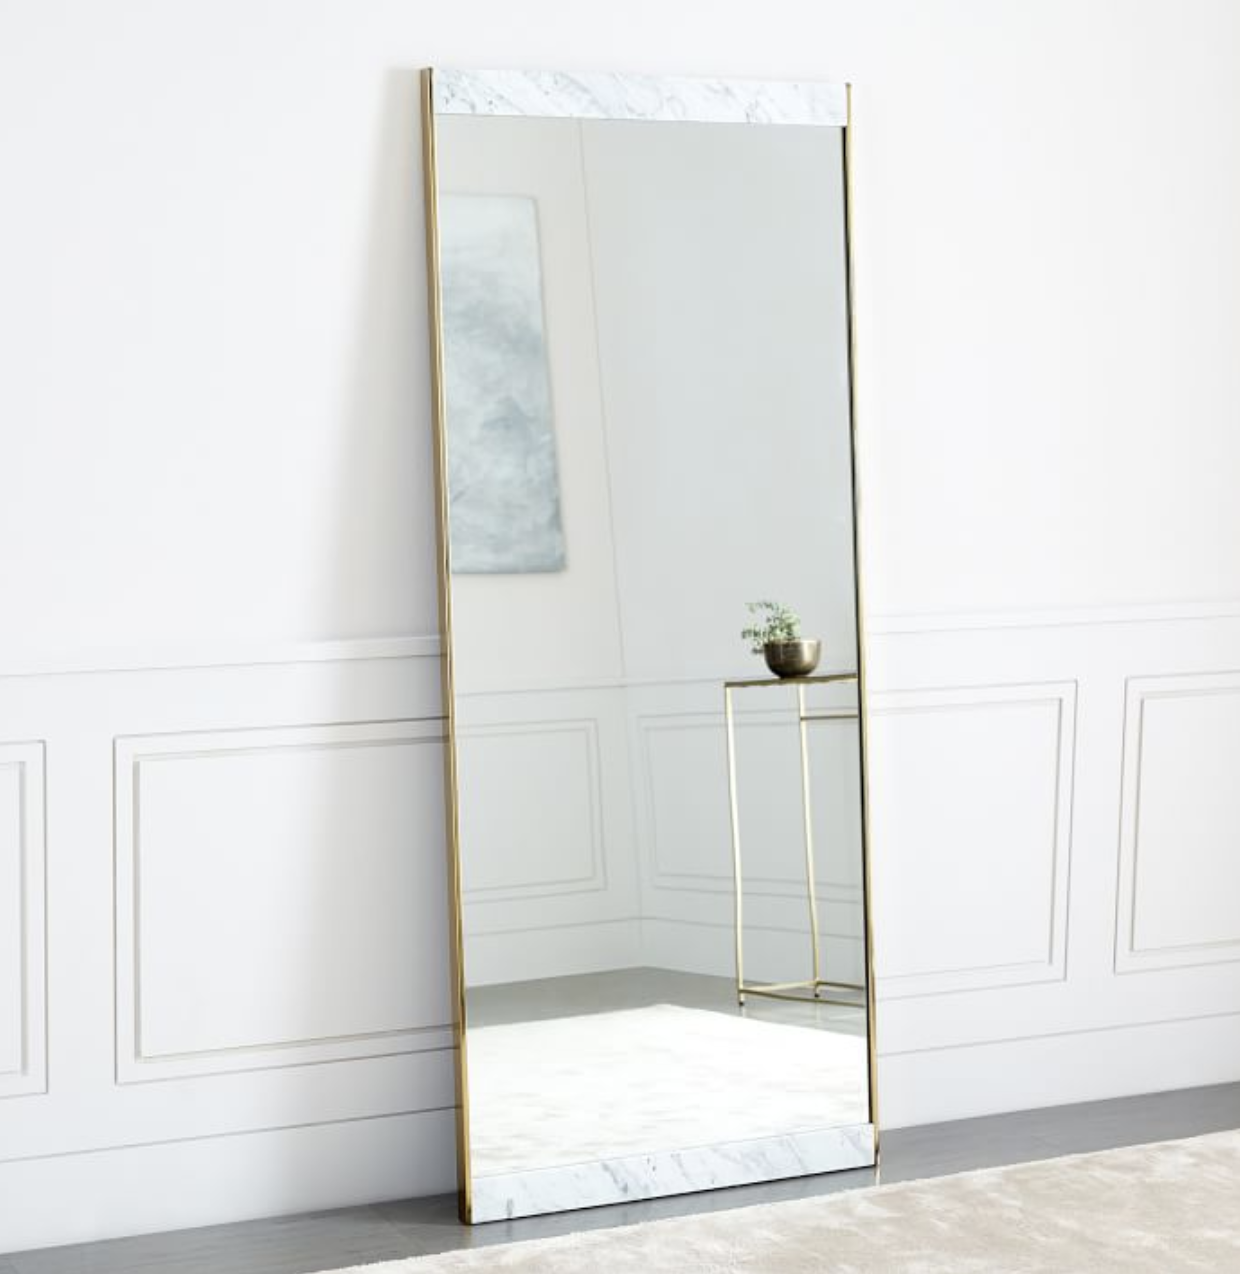 Marble + Brass - Floor mirror in marble and brushed brass, $499; West Elm